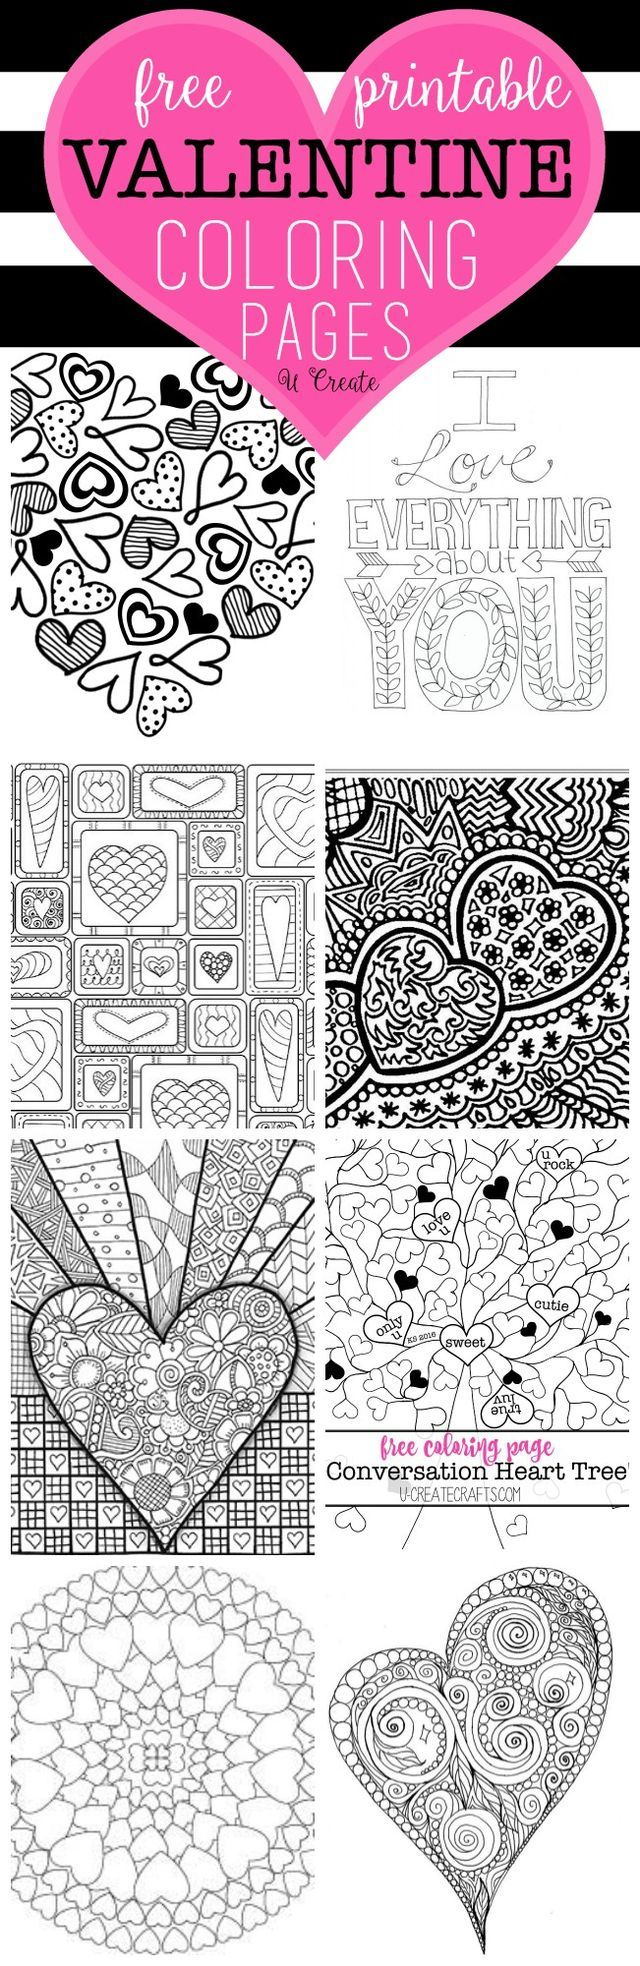 The Free Valentine Coloring Pages are here! You can't walk into a store without seeing those popular adult coloring books everywhere and you are sure to LOVE these pages. You can hang or frame your fi